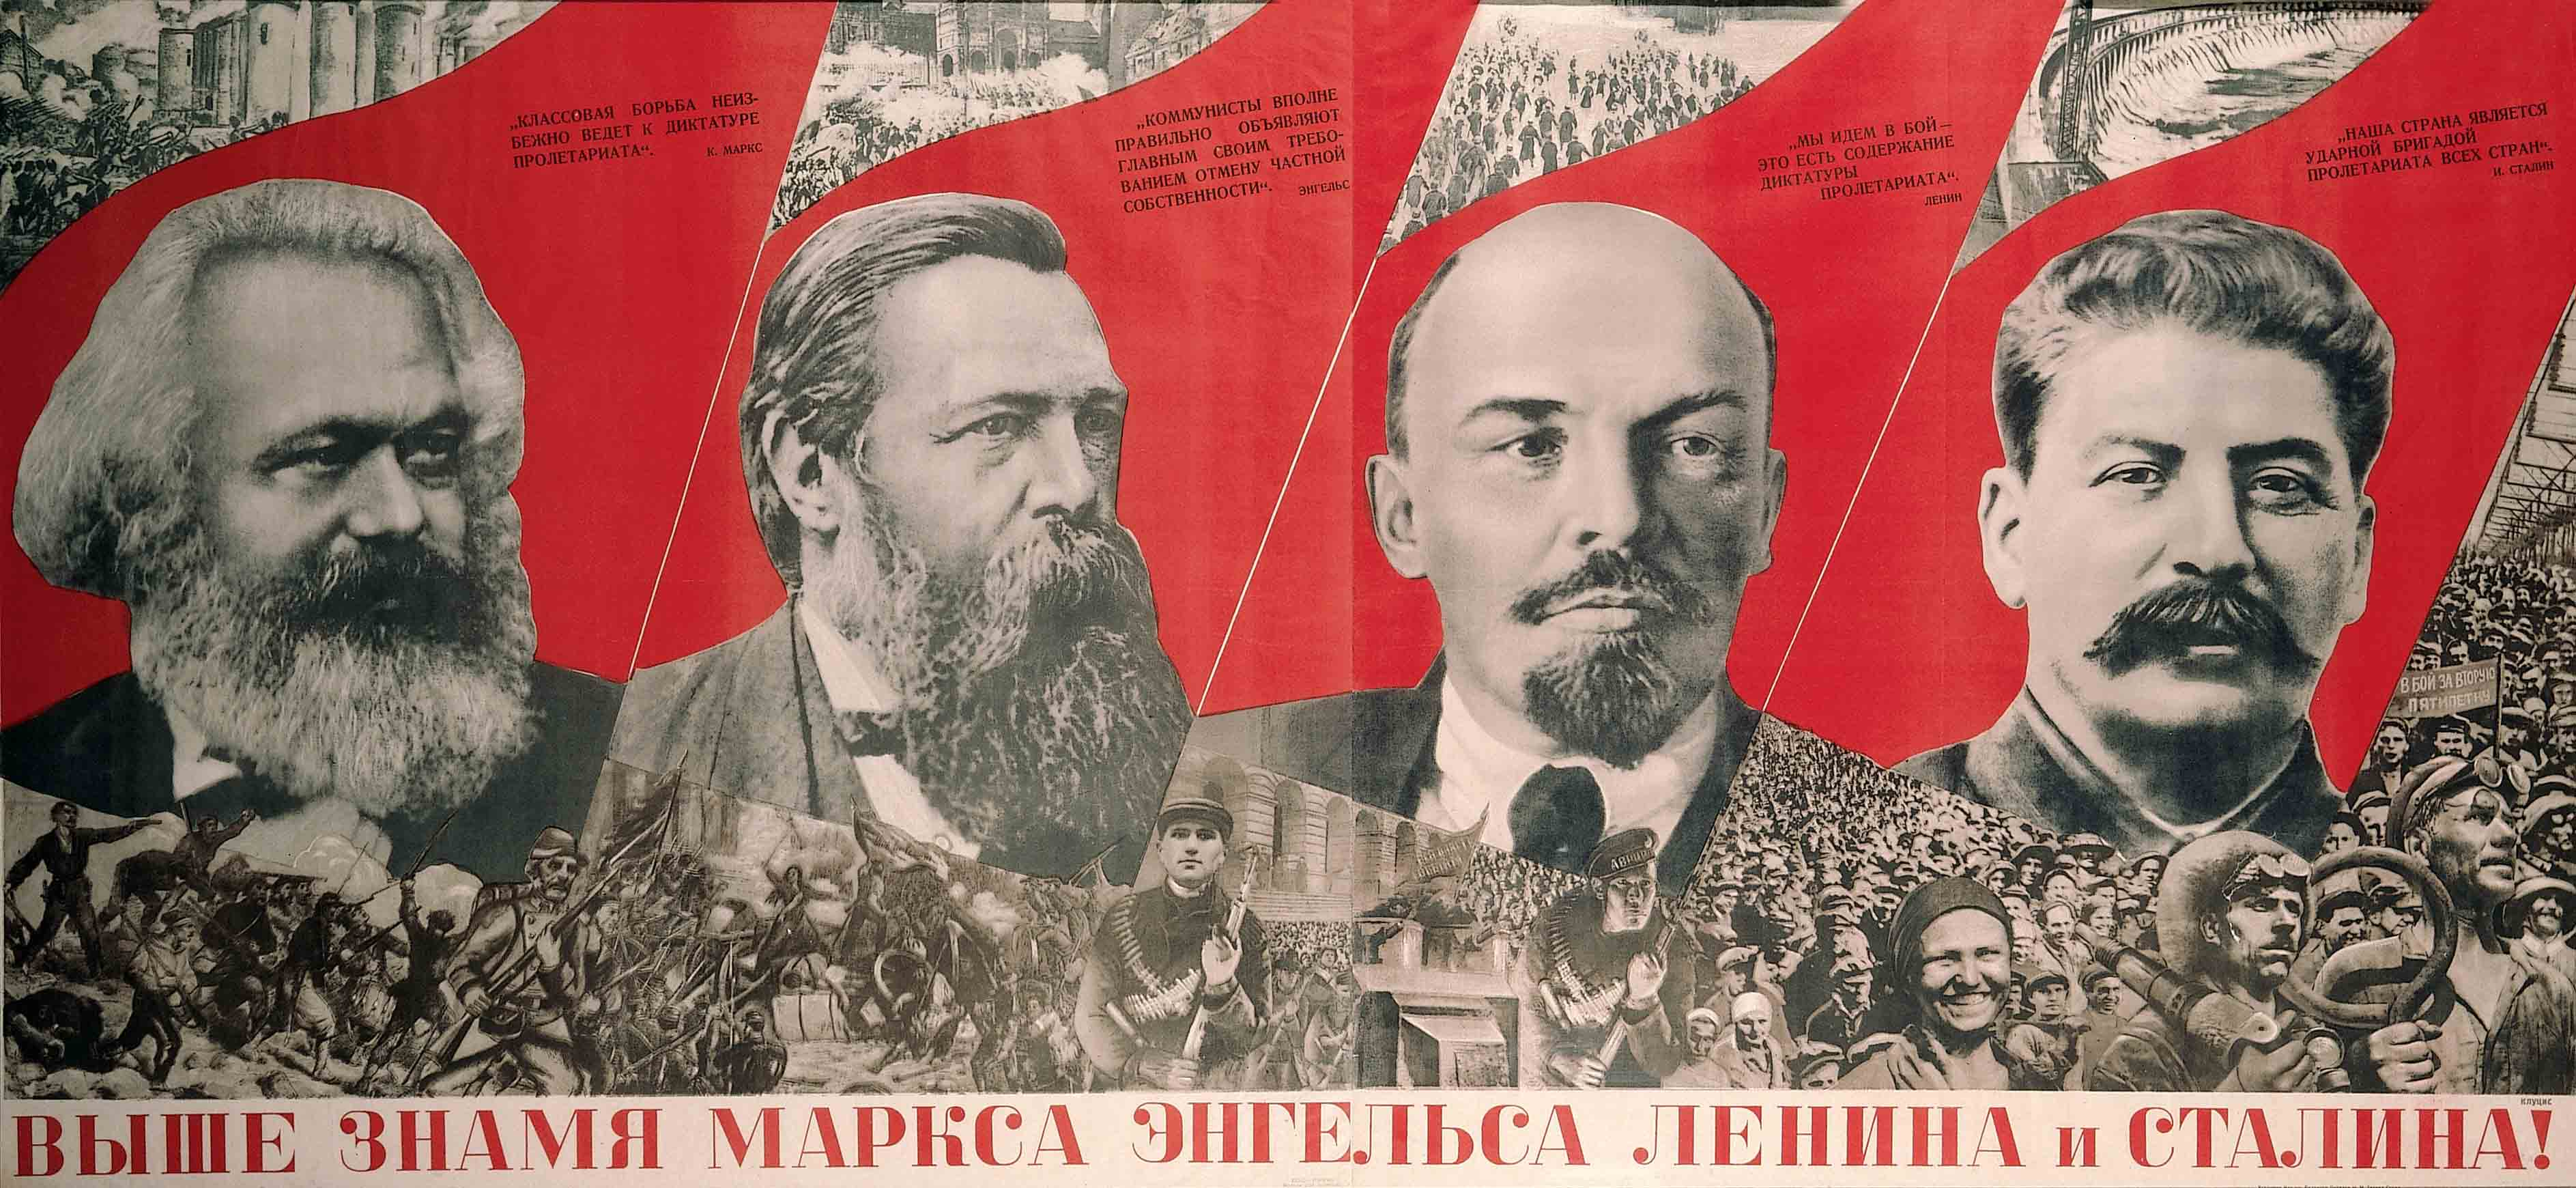 Raise Higher the Banner of Marx, Engels, Lenin and Stalin!, Gustav Klutsis, 1933. Purchased 2016. The David King Collection at Tate